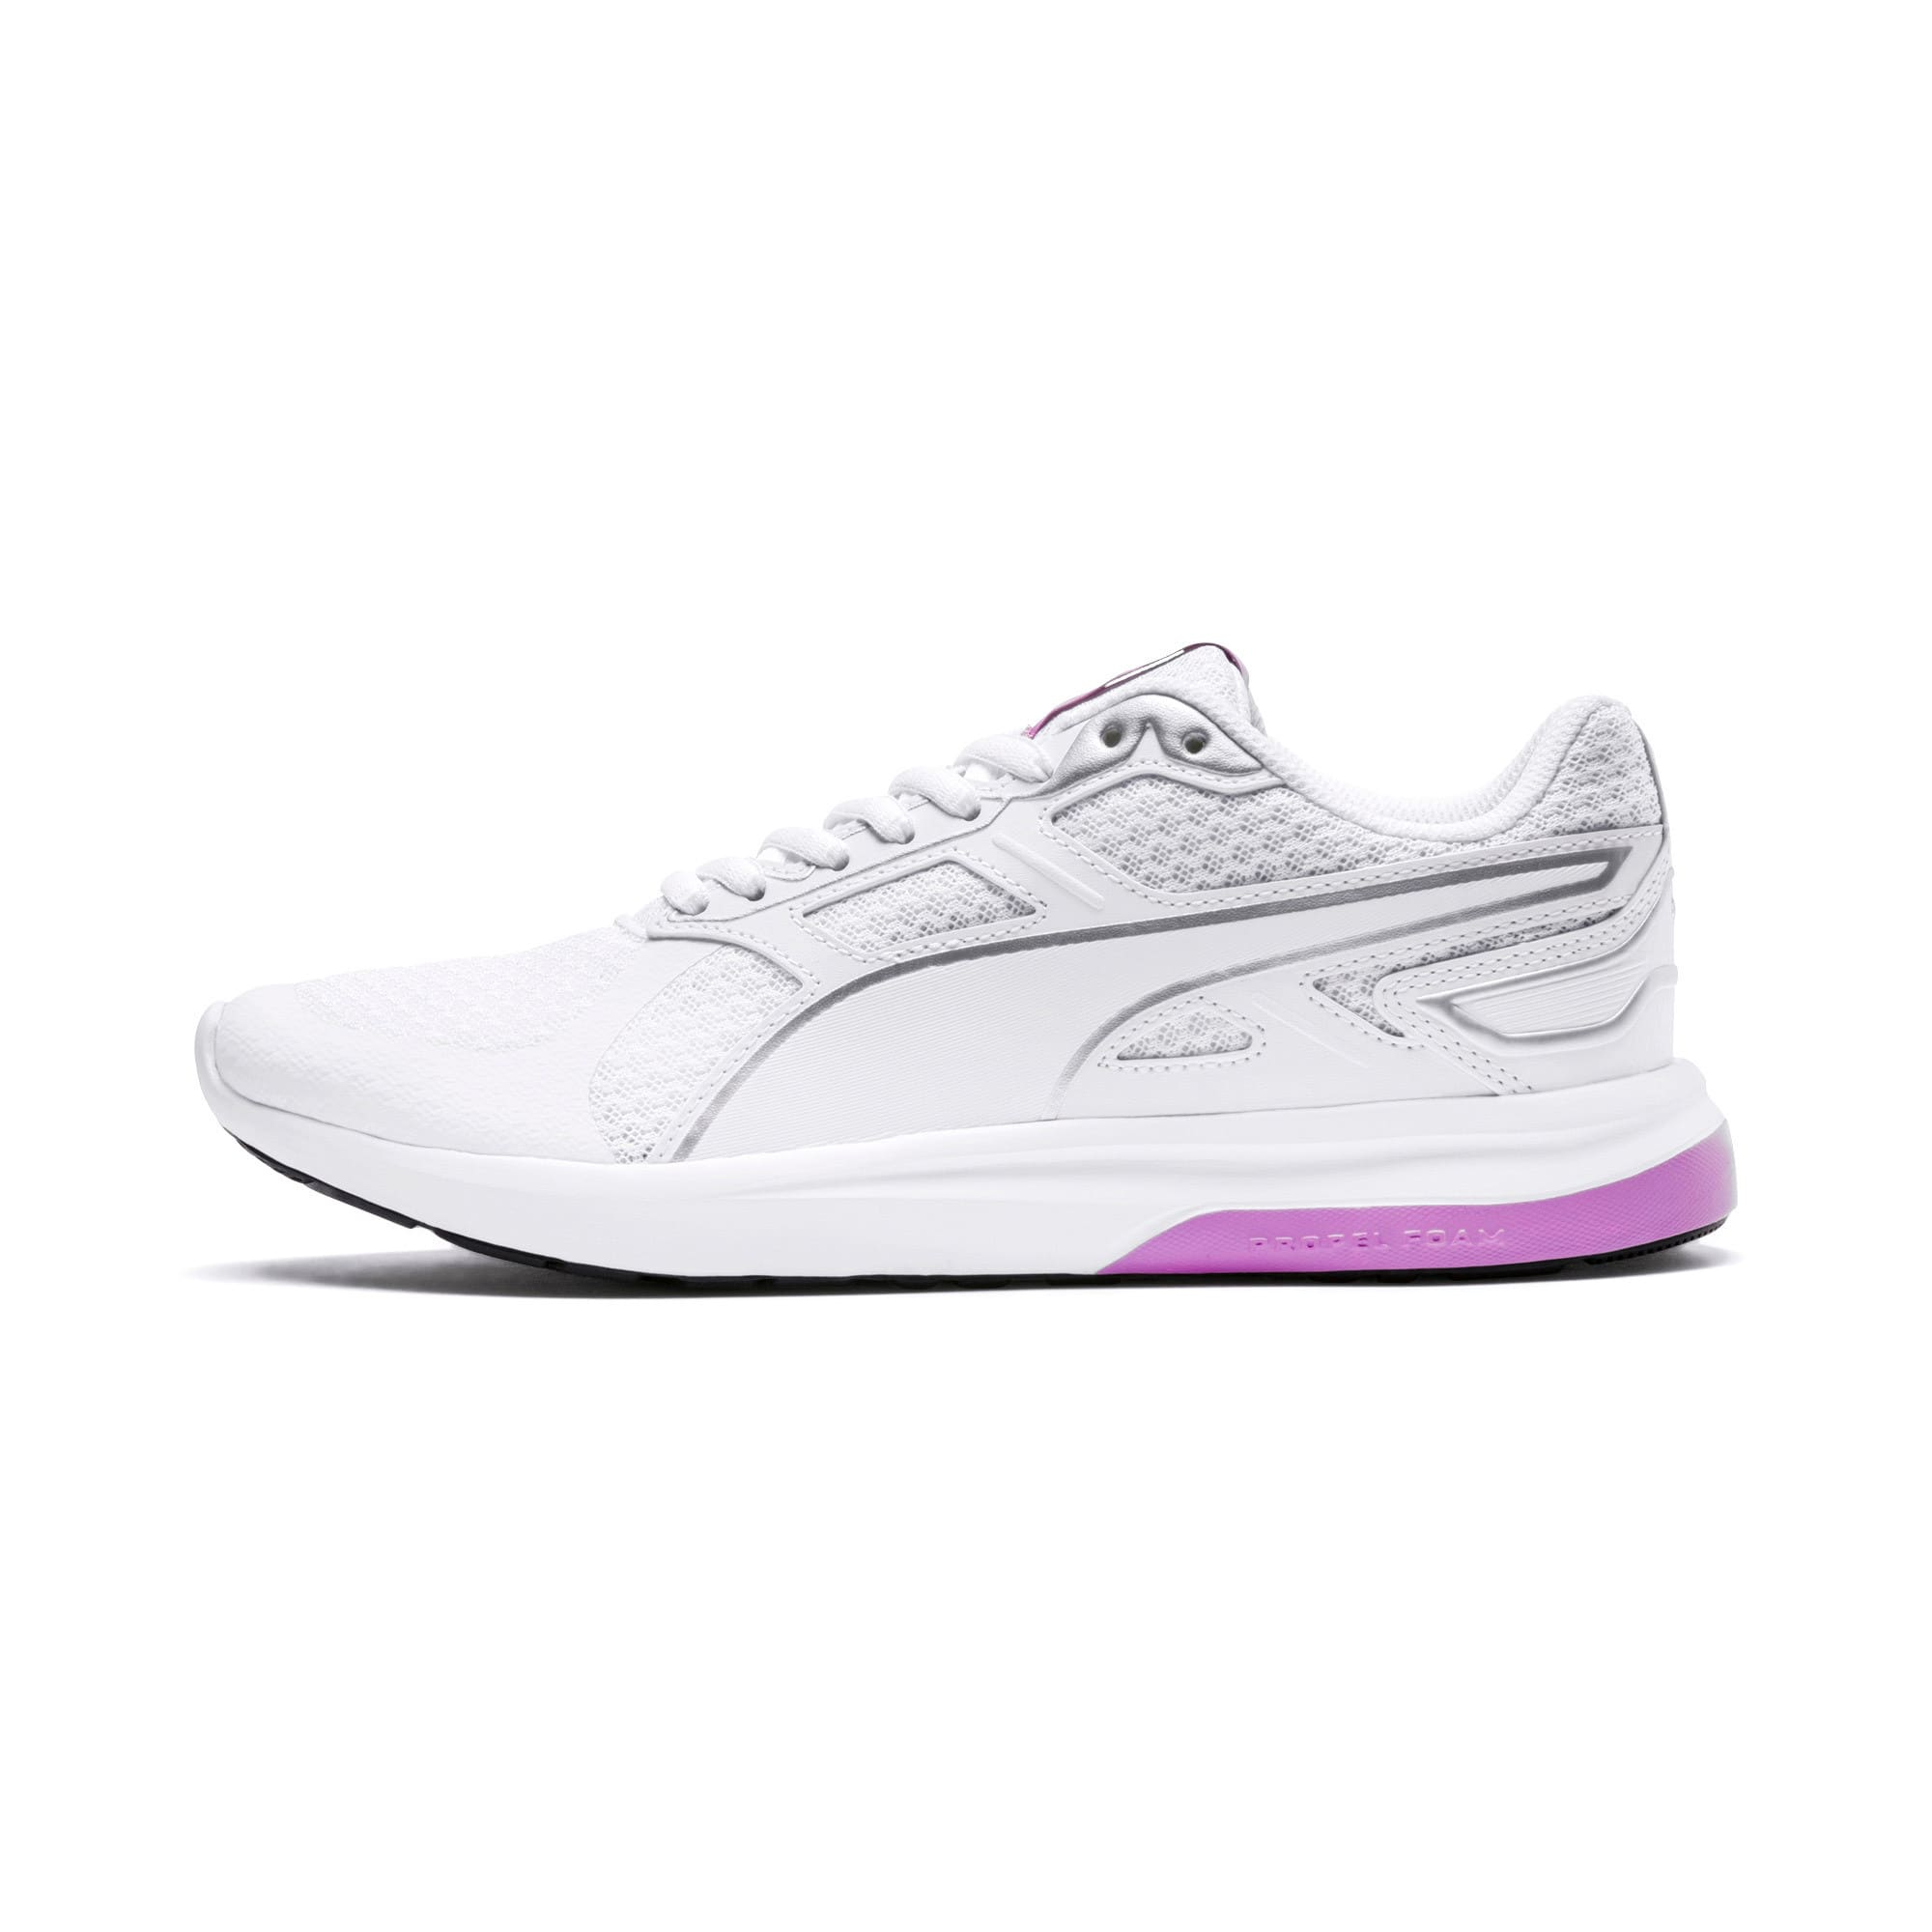 Thumbnail 1 of Escaper Tech Sneakers, Puma White-Puma White-Orchid, medium-IND